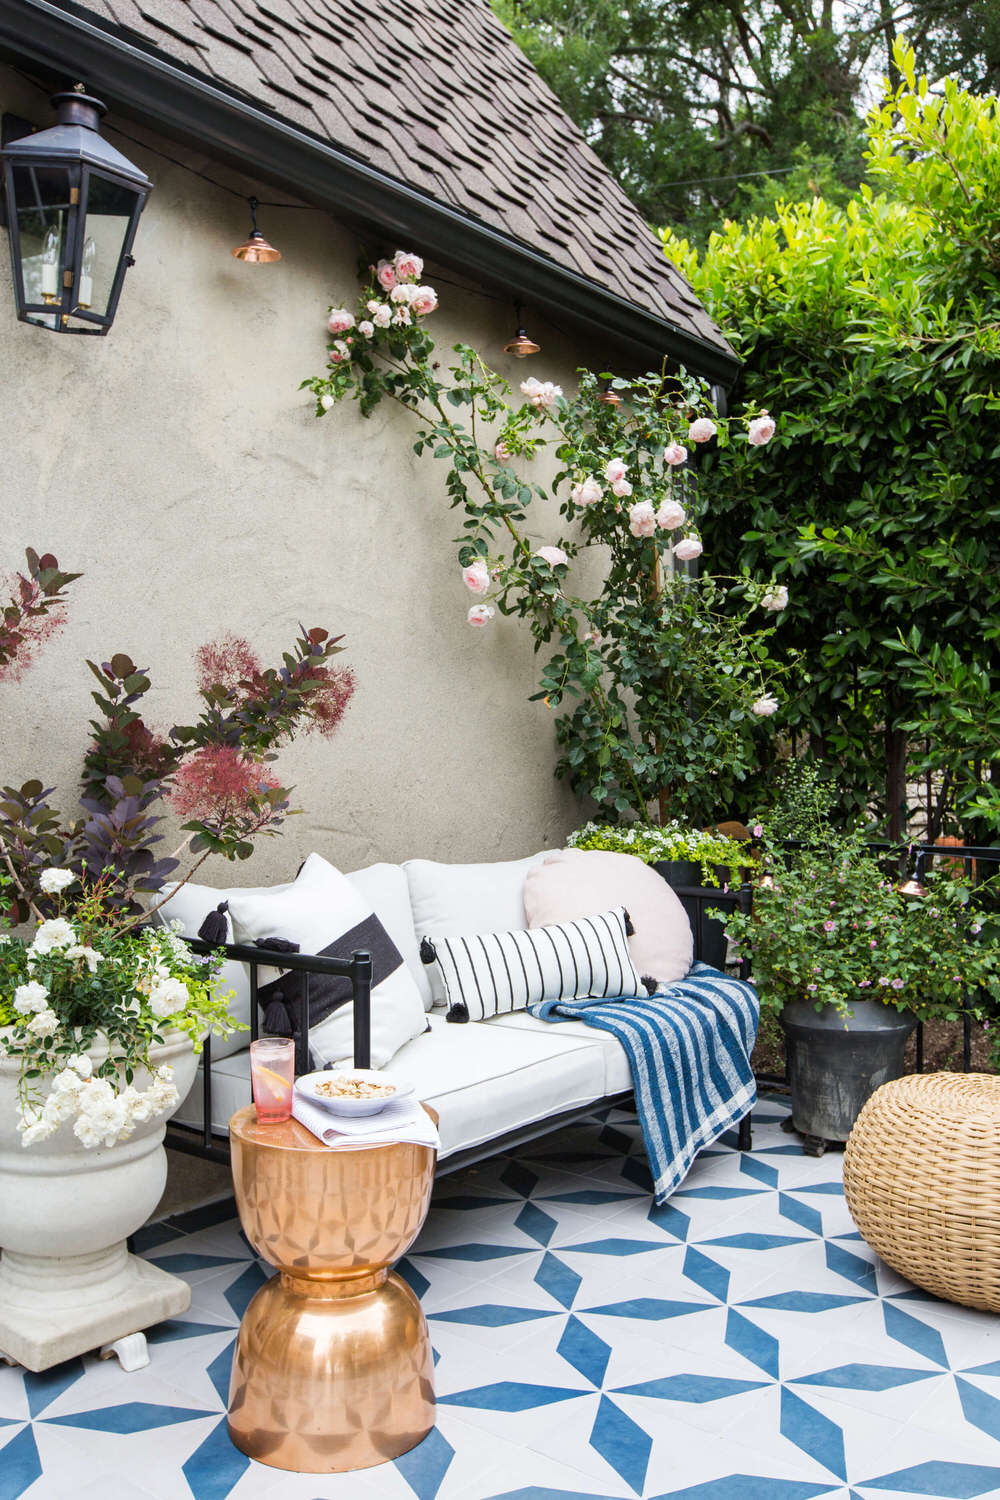 15 Amazing Outdoor Patio Ideas  The Garden Glove